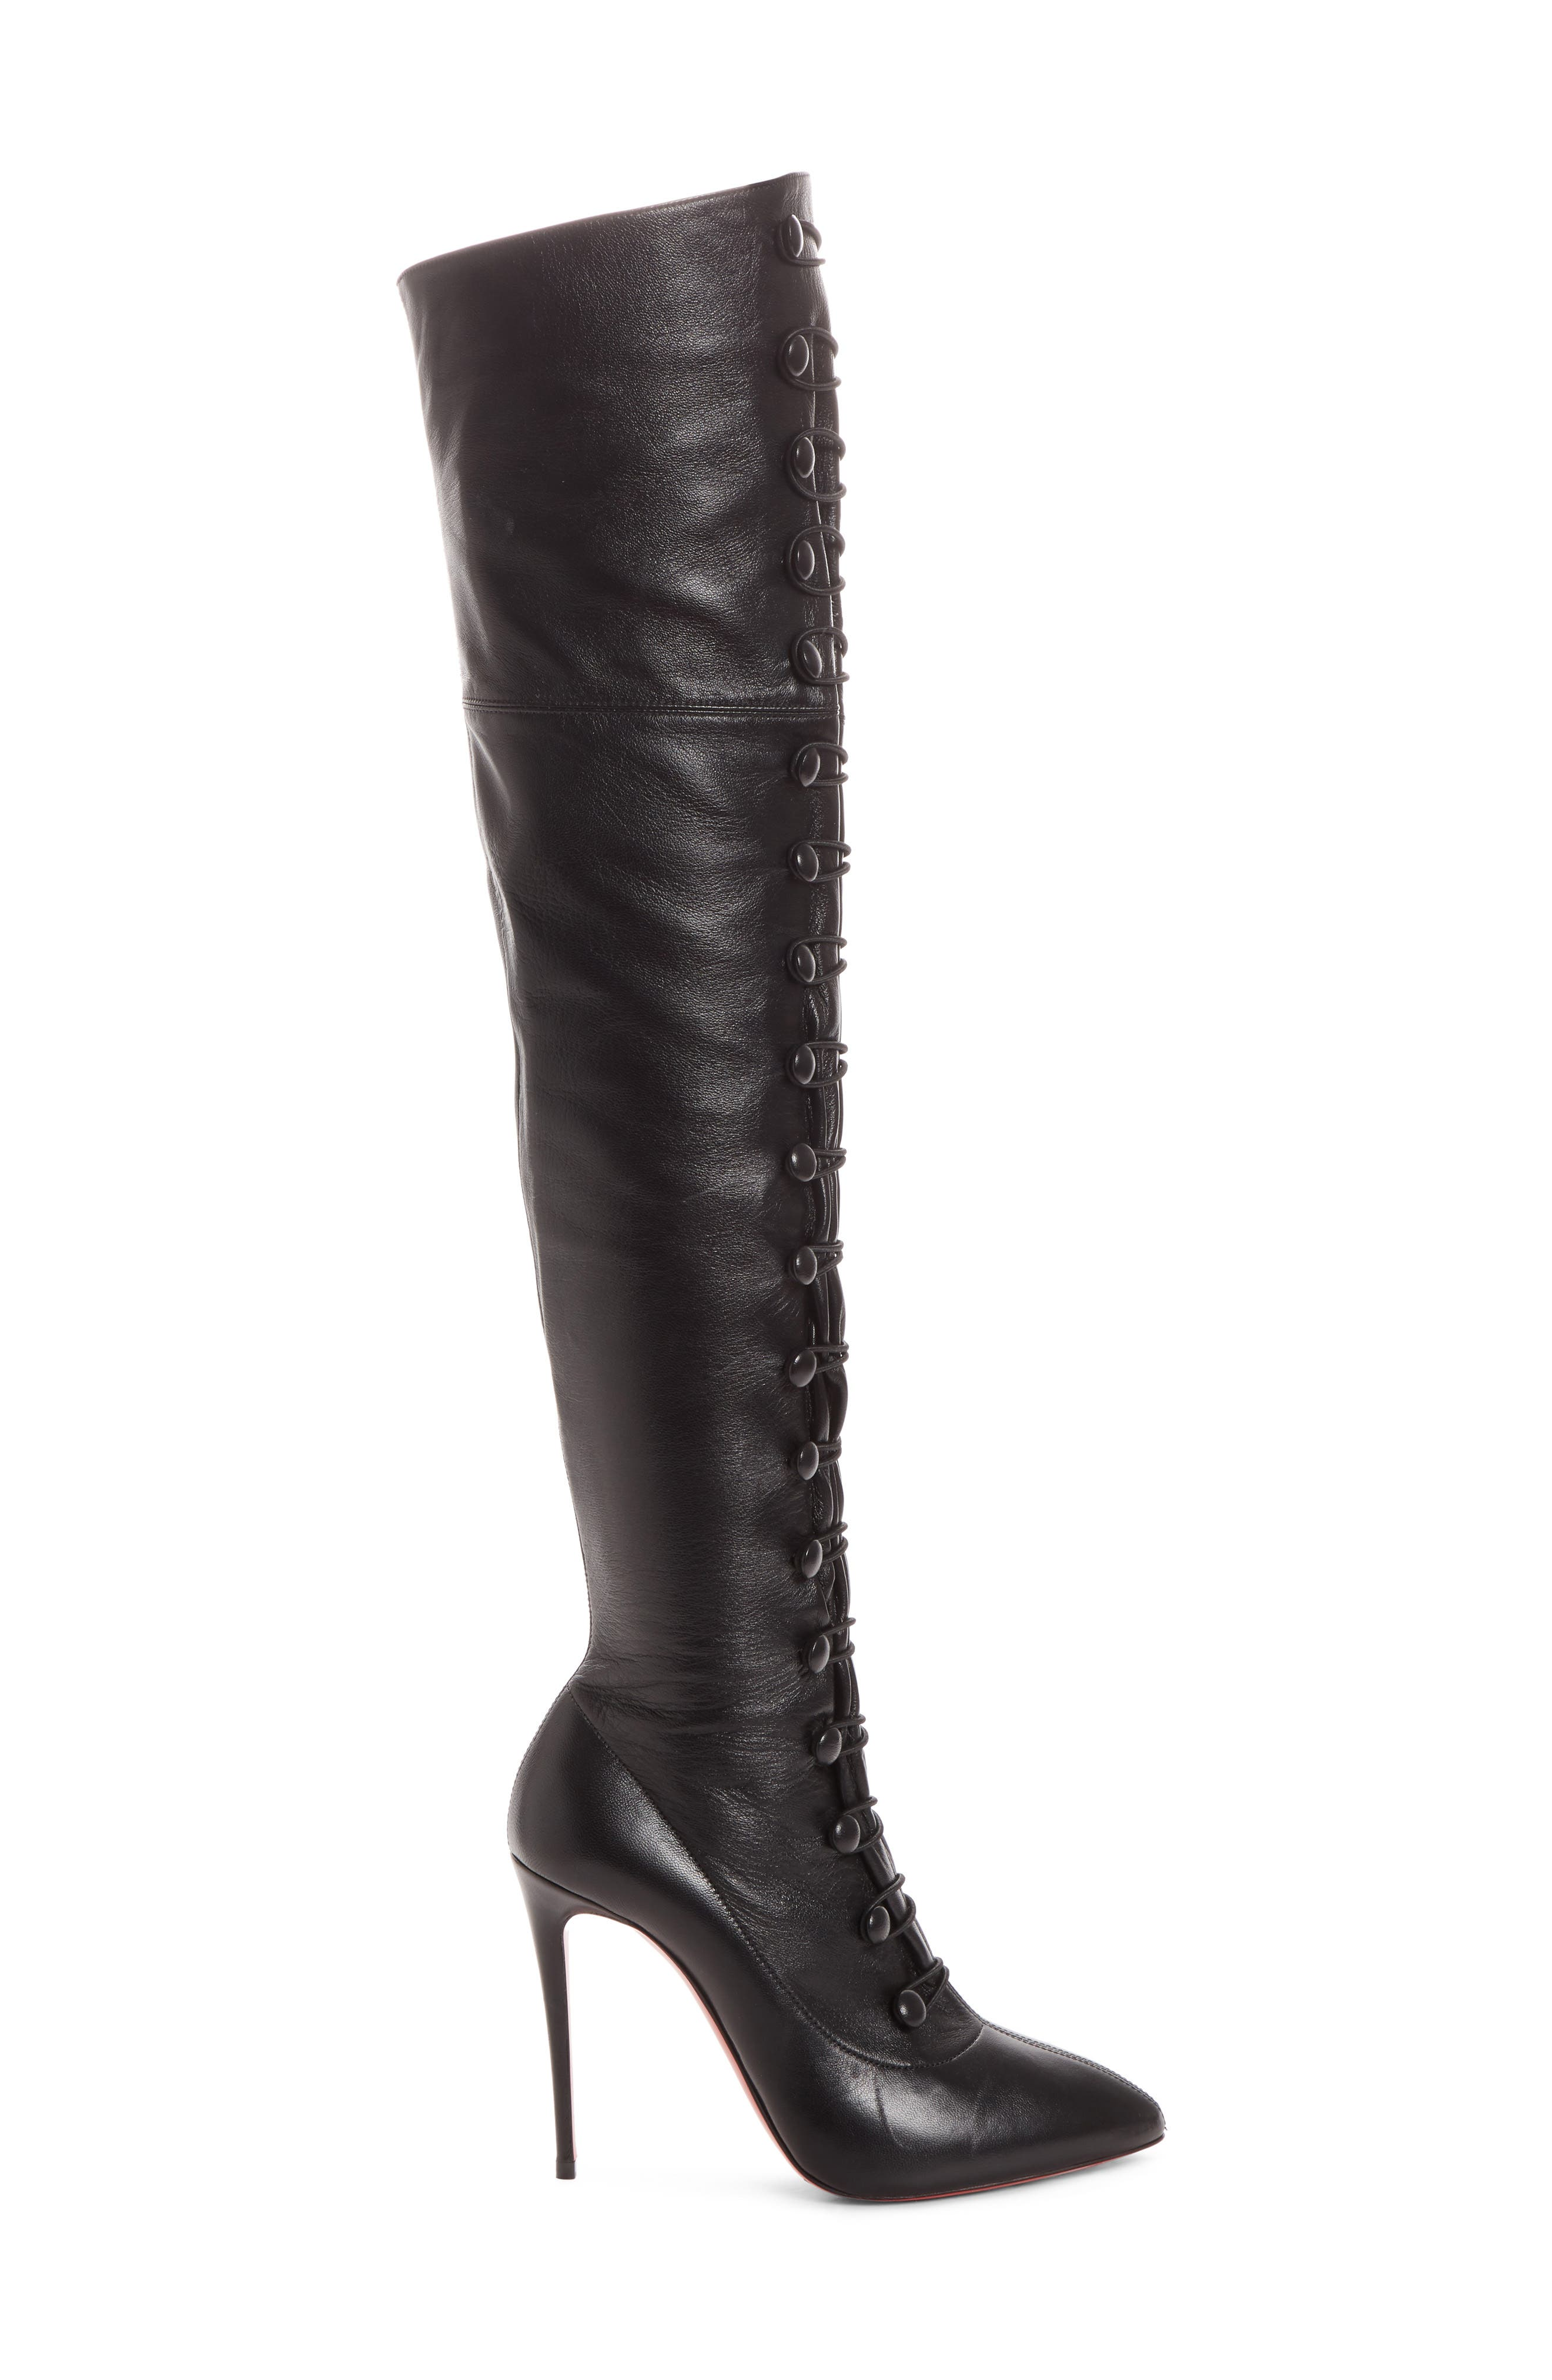 French Tutu Over the Knee Boot,                             Alternate thumbnail 3, color,                             001